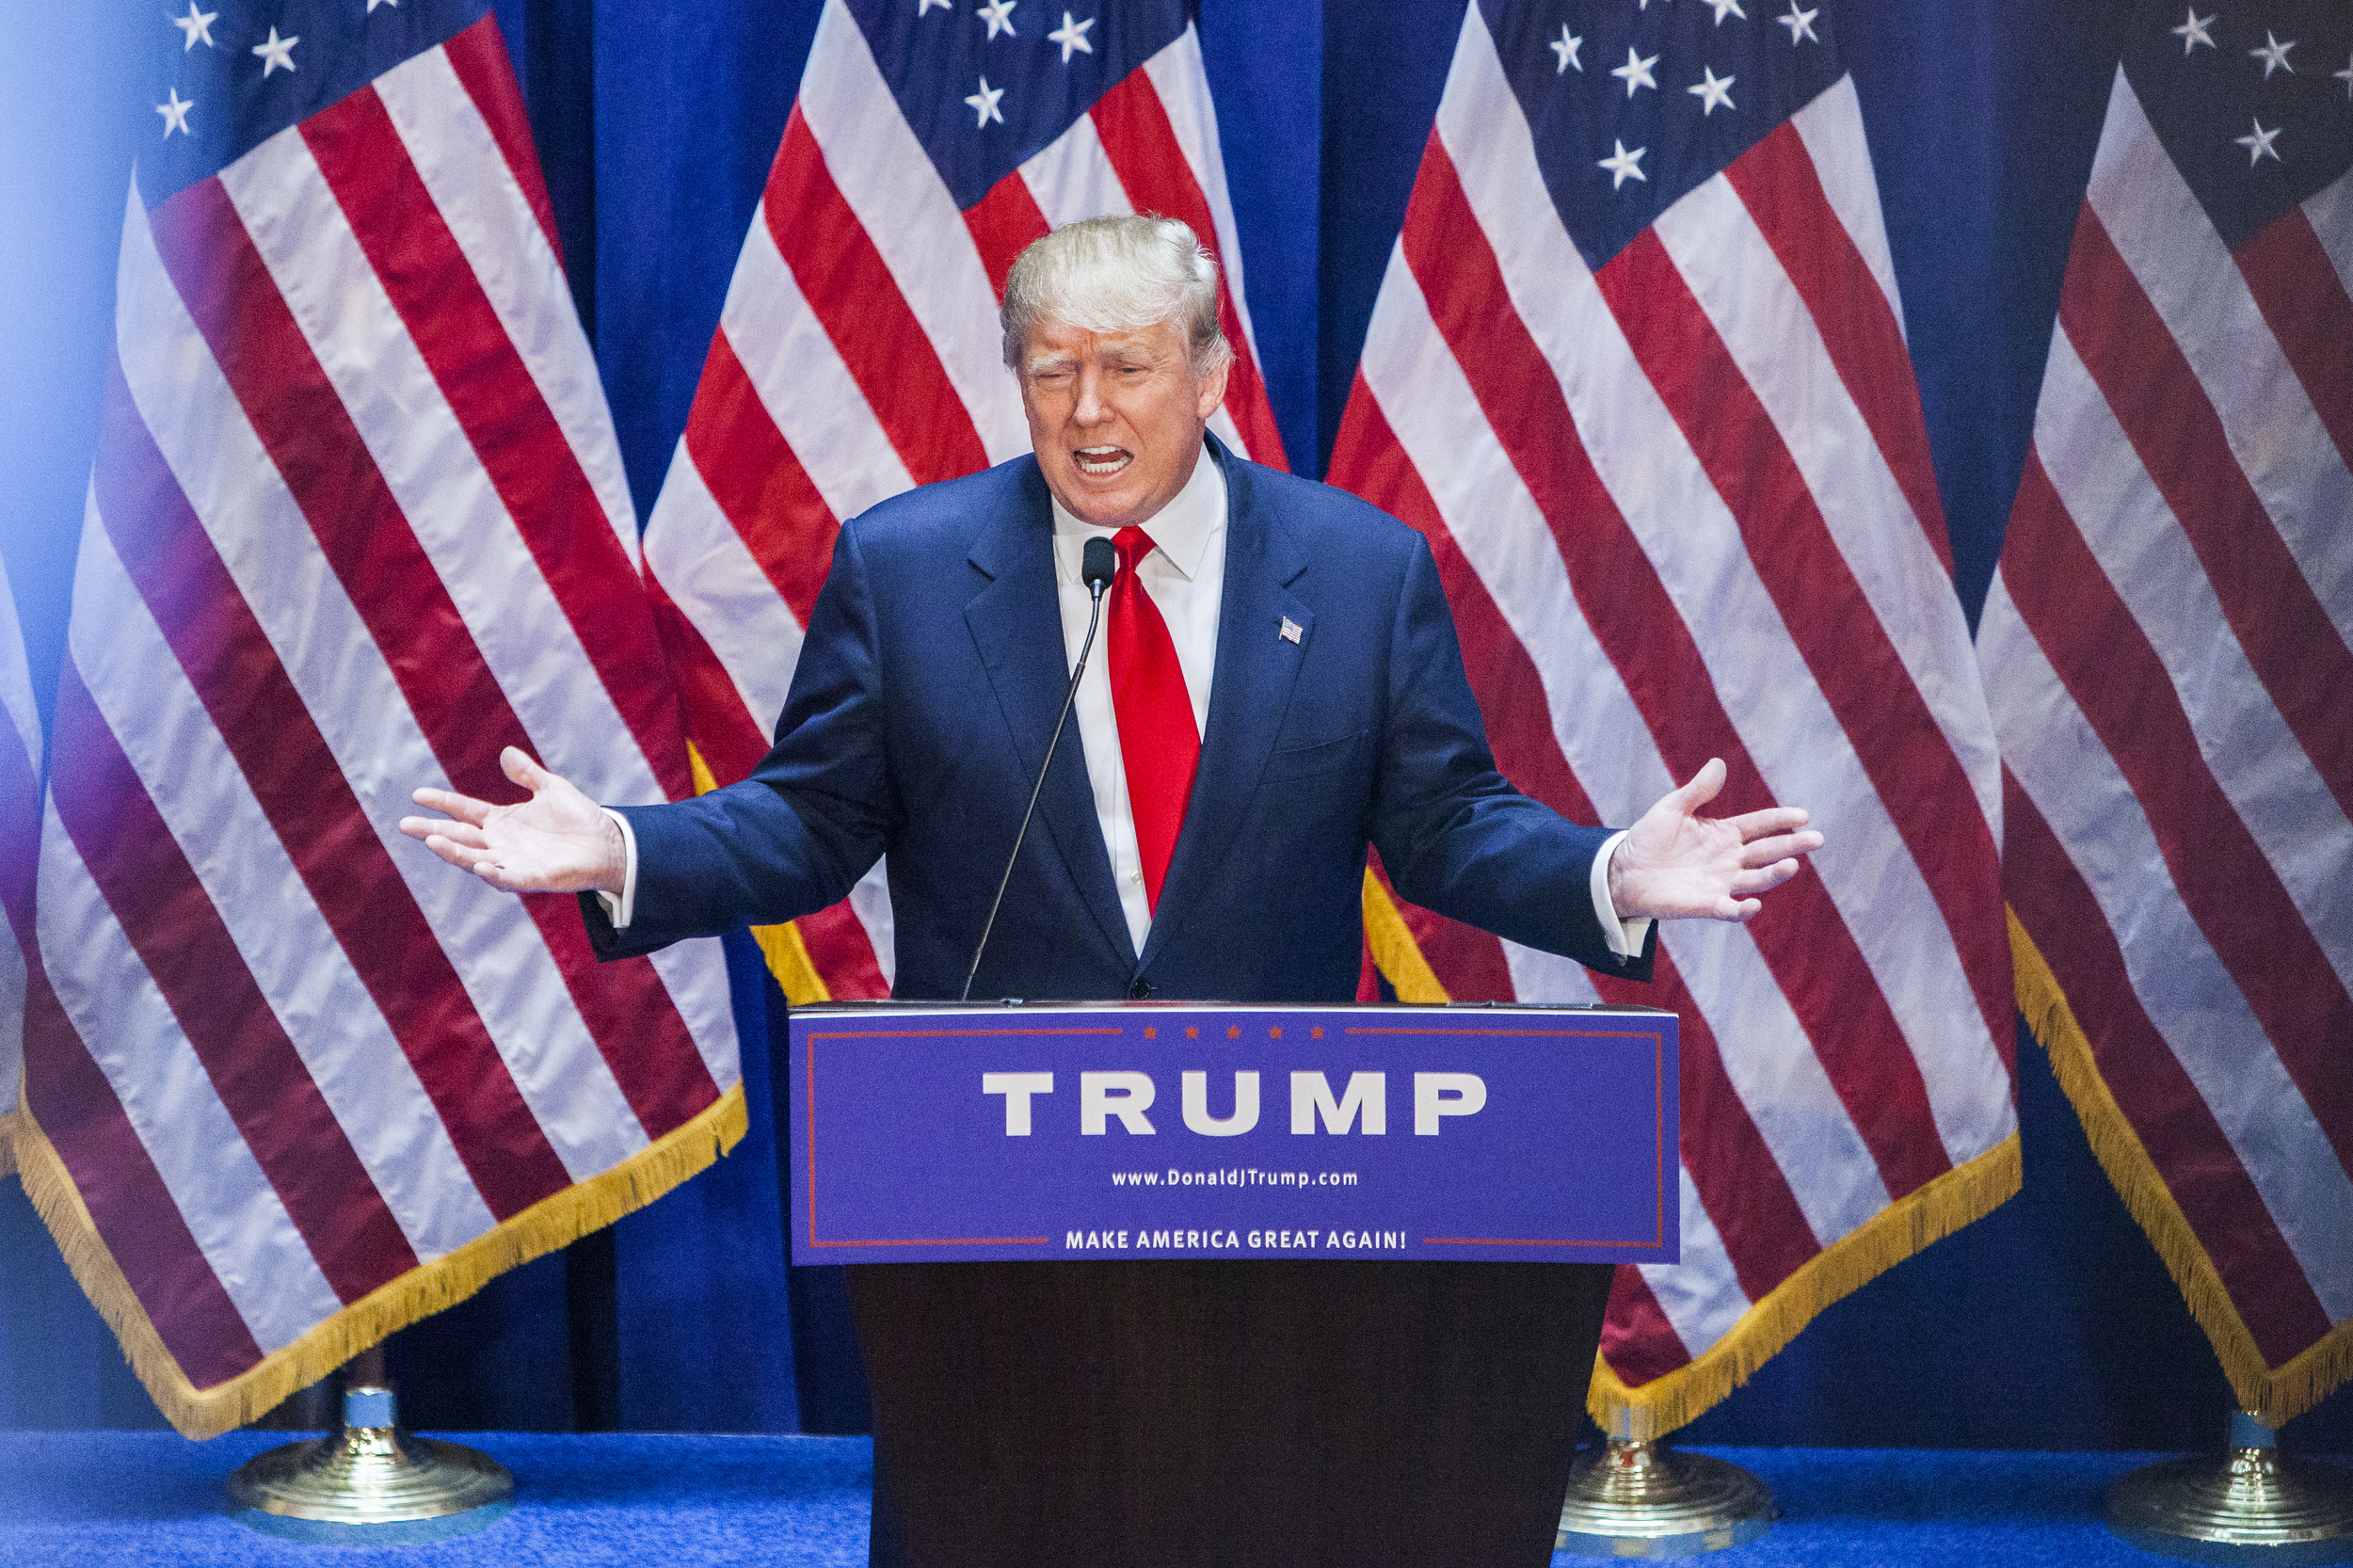 donald trump essay Donald trump essays: over 180,000 donald trump essays, donald trump term papers, donald trump research paper, book reports 184 990 essays, term and research papers.